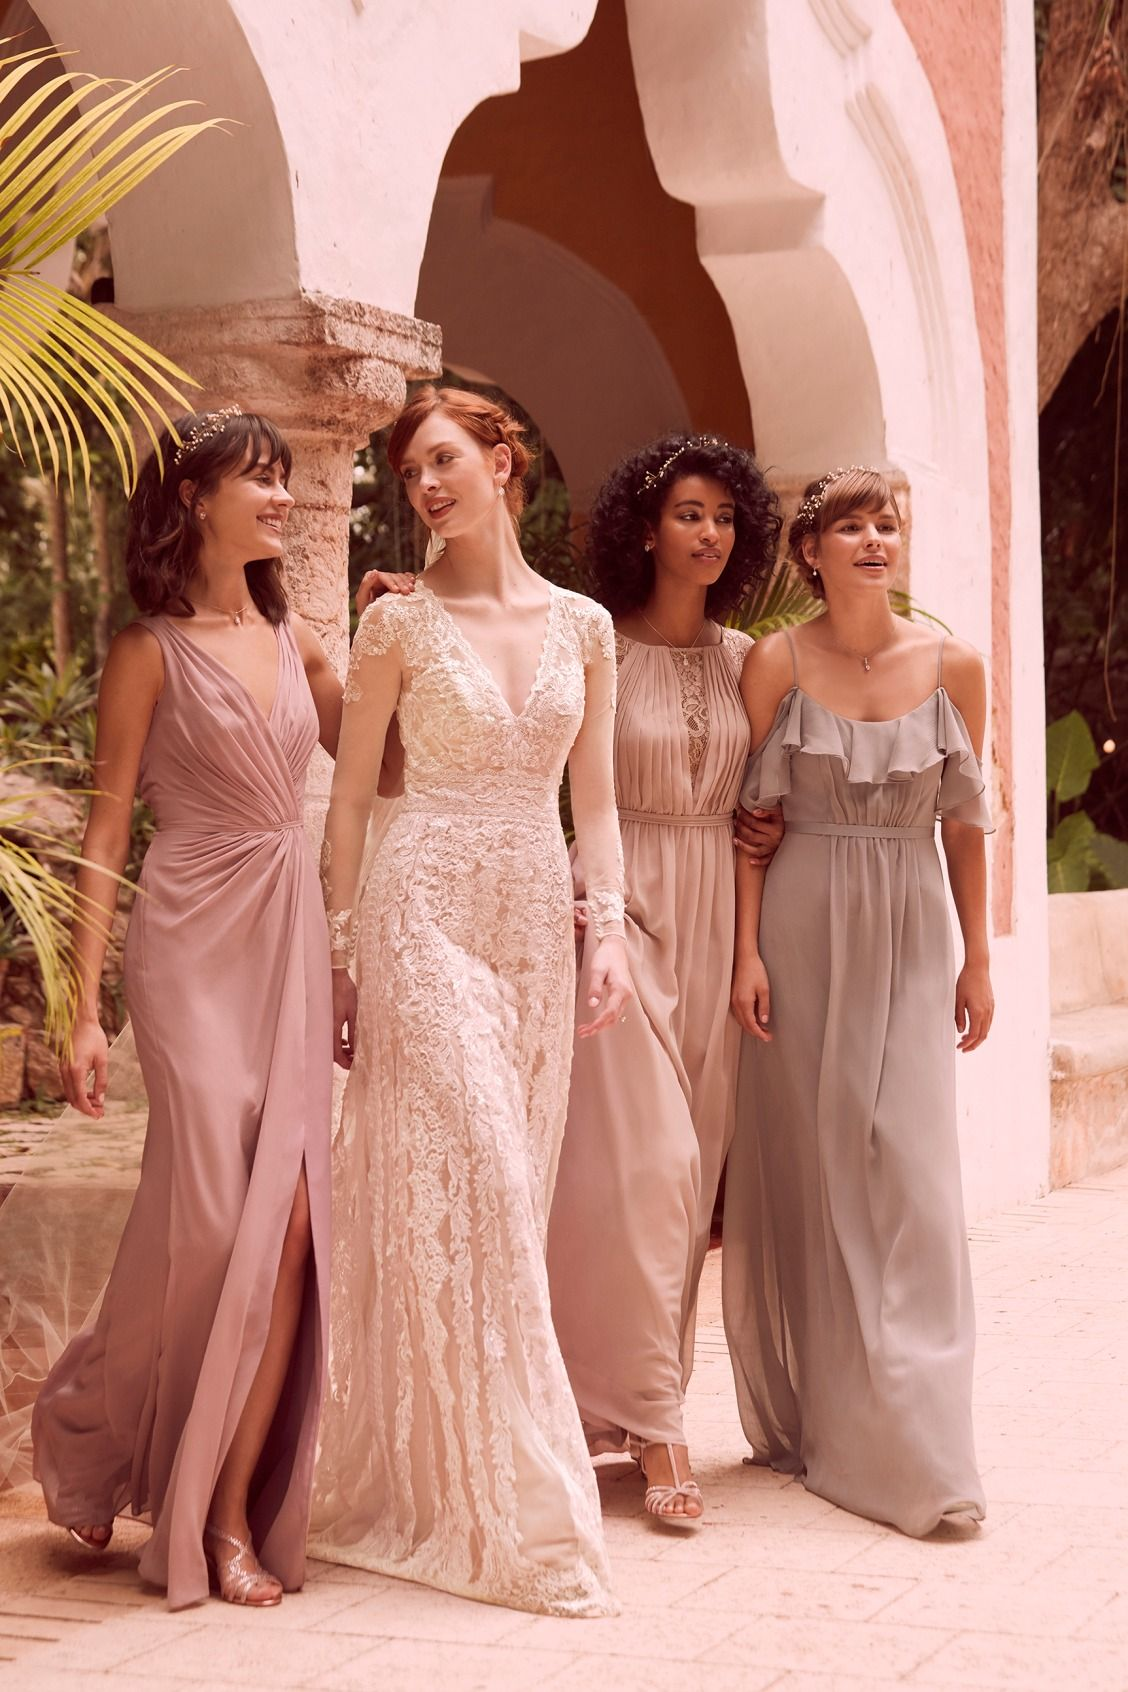 Mismatched bridesmaid inspiration this rose quartz v neck mismatched bridesmaid inspiration this rose quartz v neck bridesmaid dress gold metallic chiffon ombrellifo Images